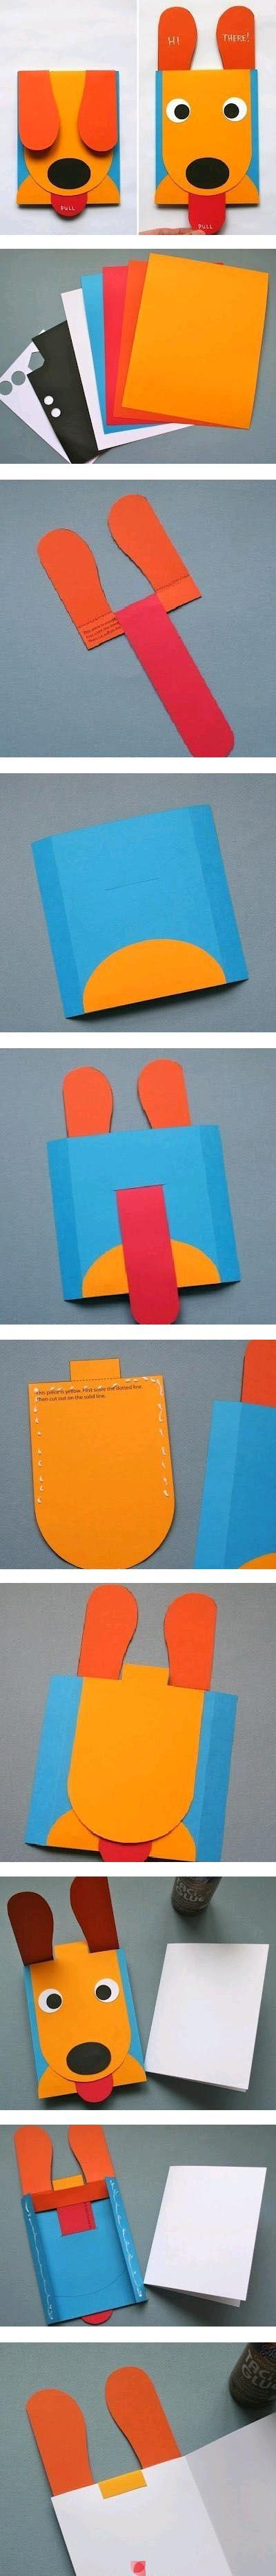 @Denise H. H. Greppo I bet Luke would love this. hint. interactive puppy card.: